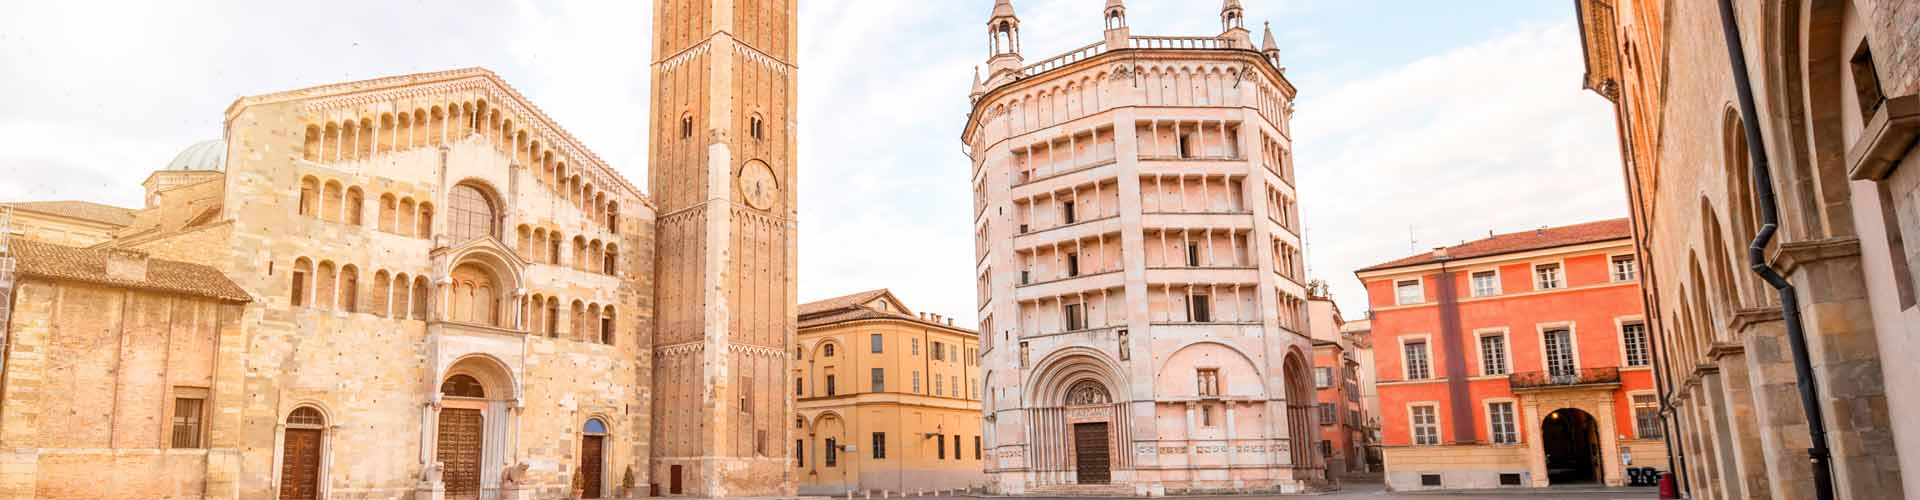 Parma Batptistery Cathedral Square